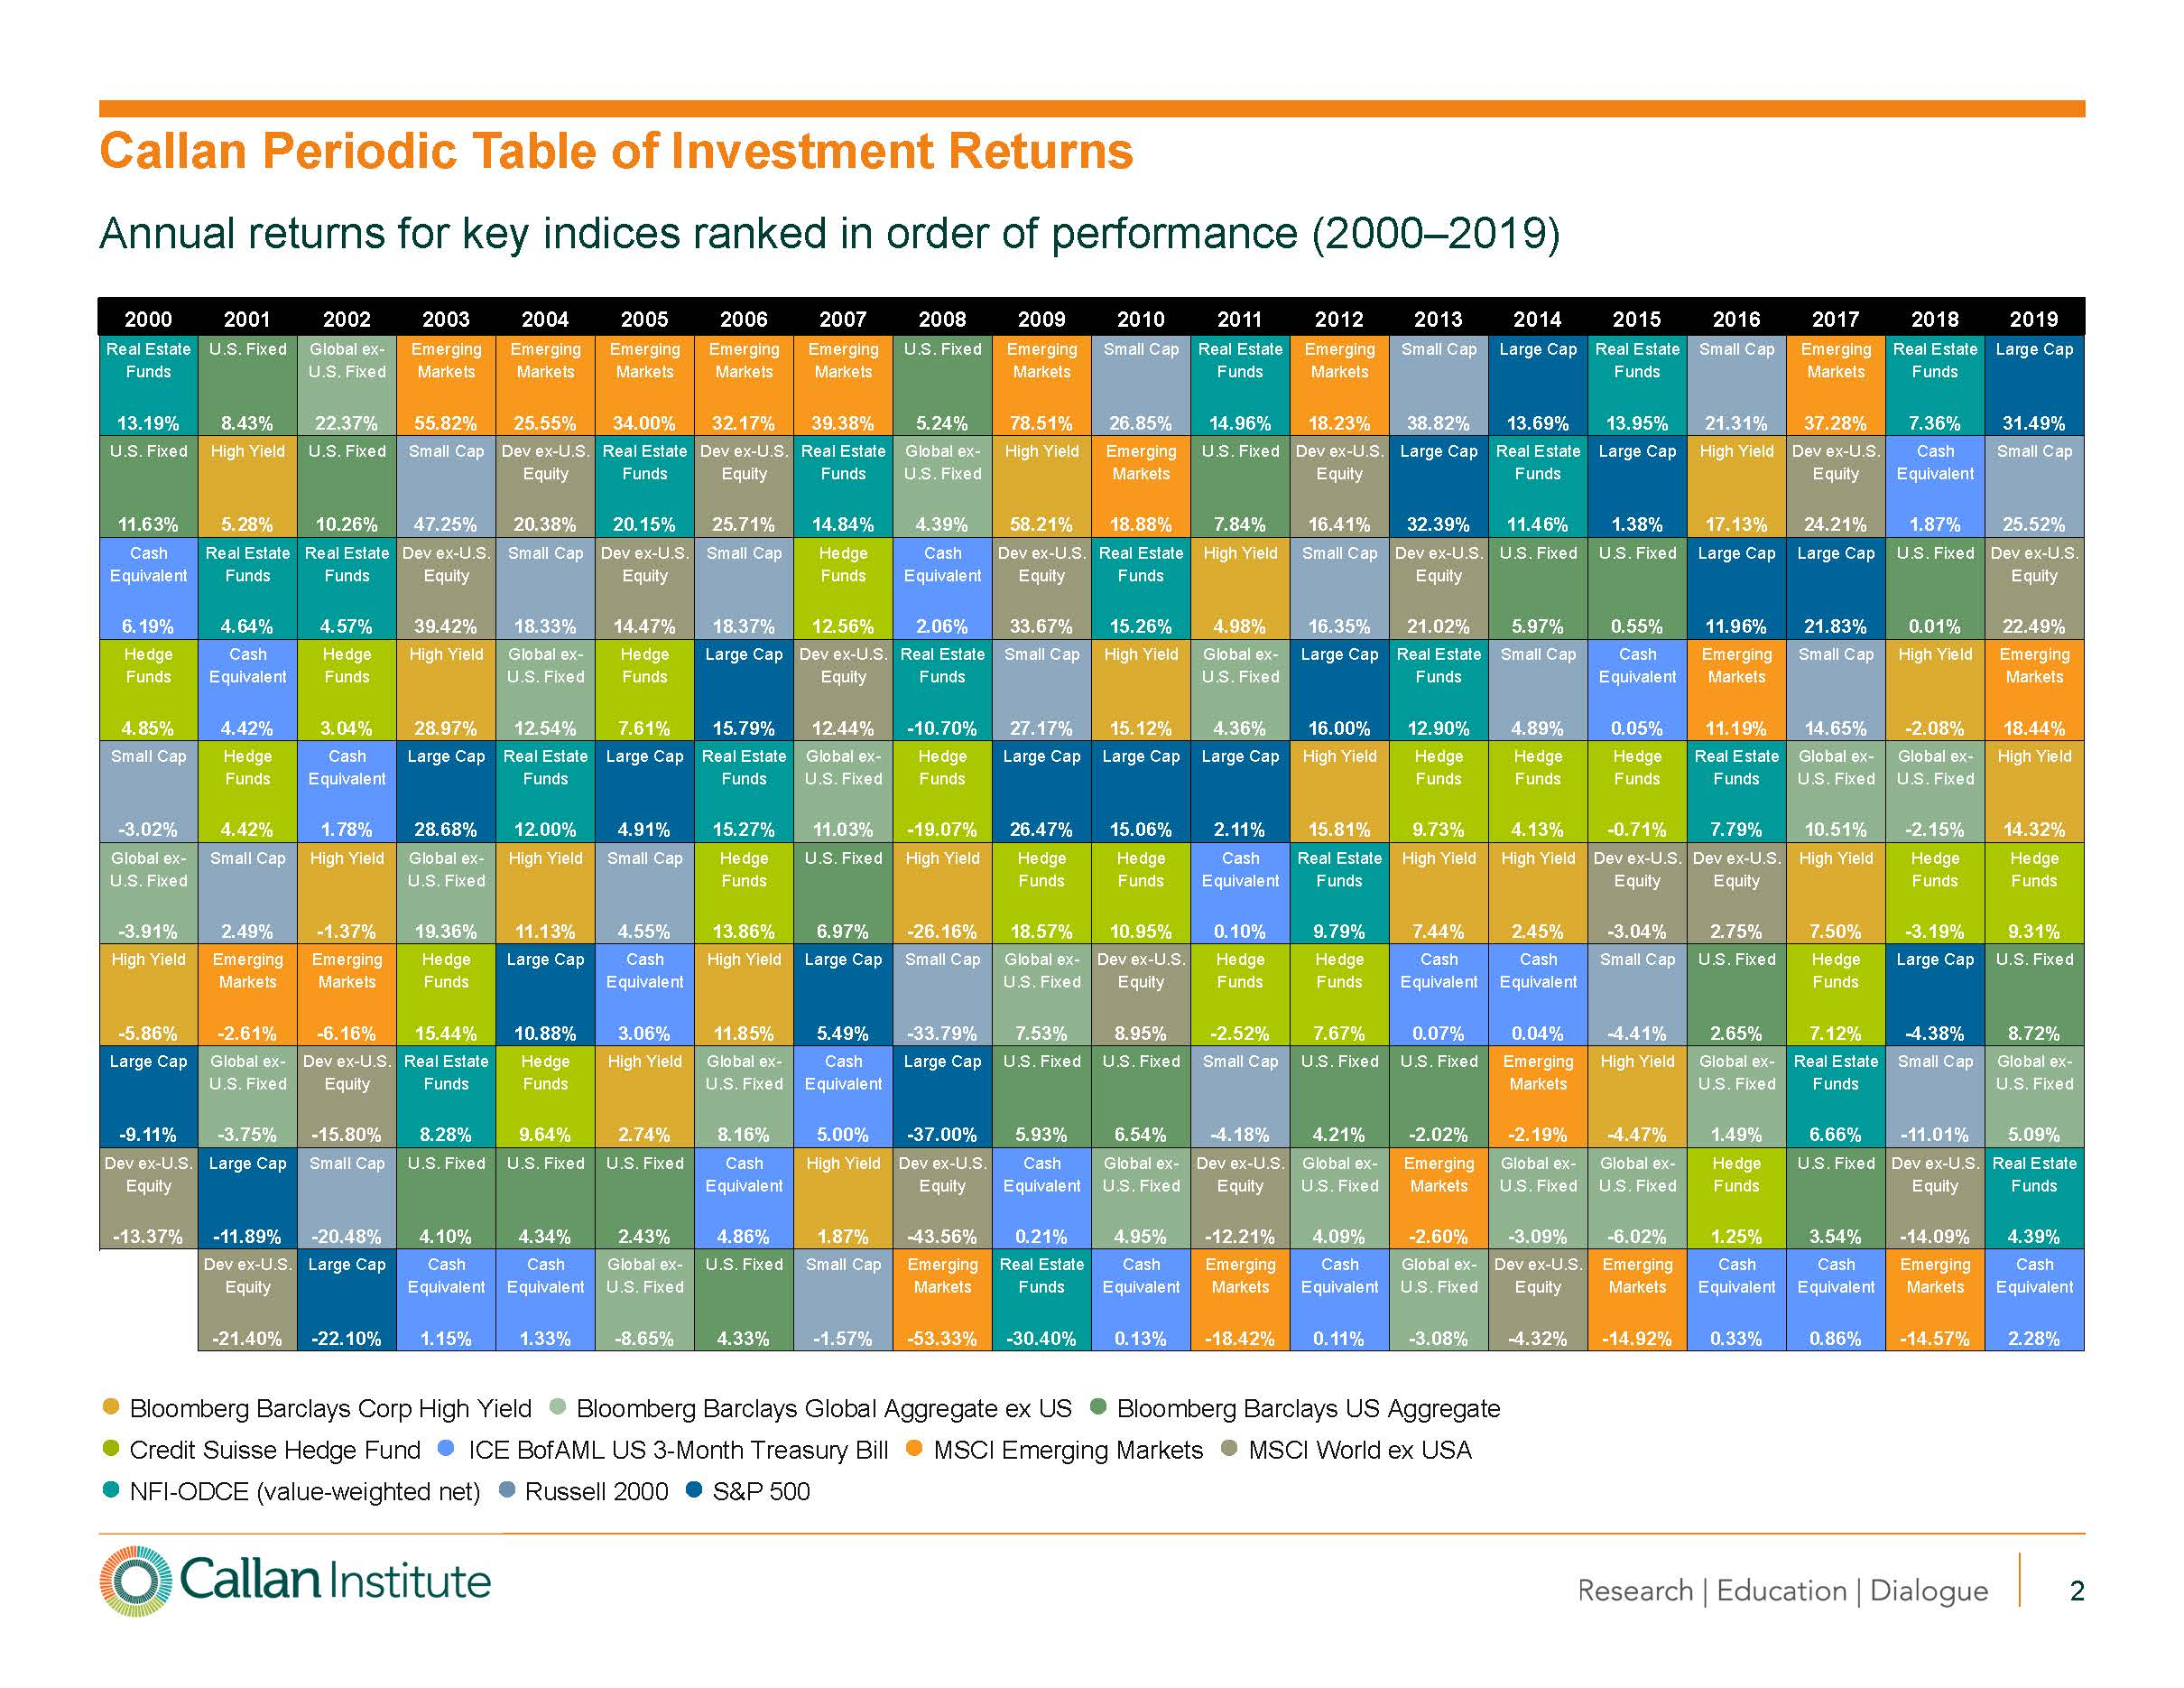 Callan Periodic table of investments